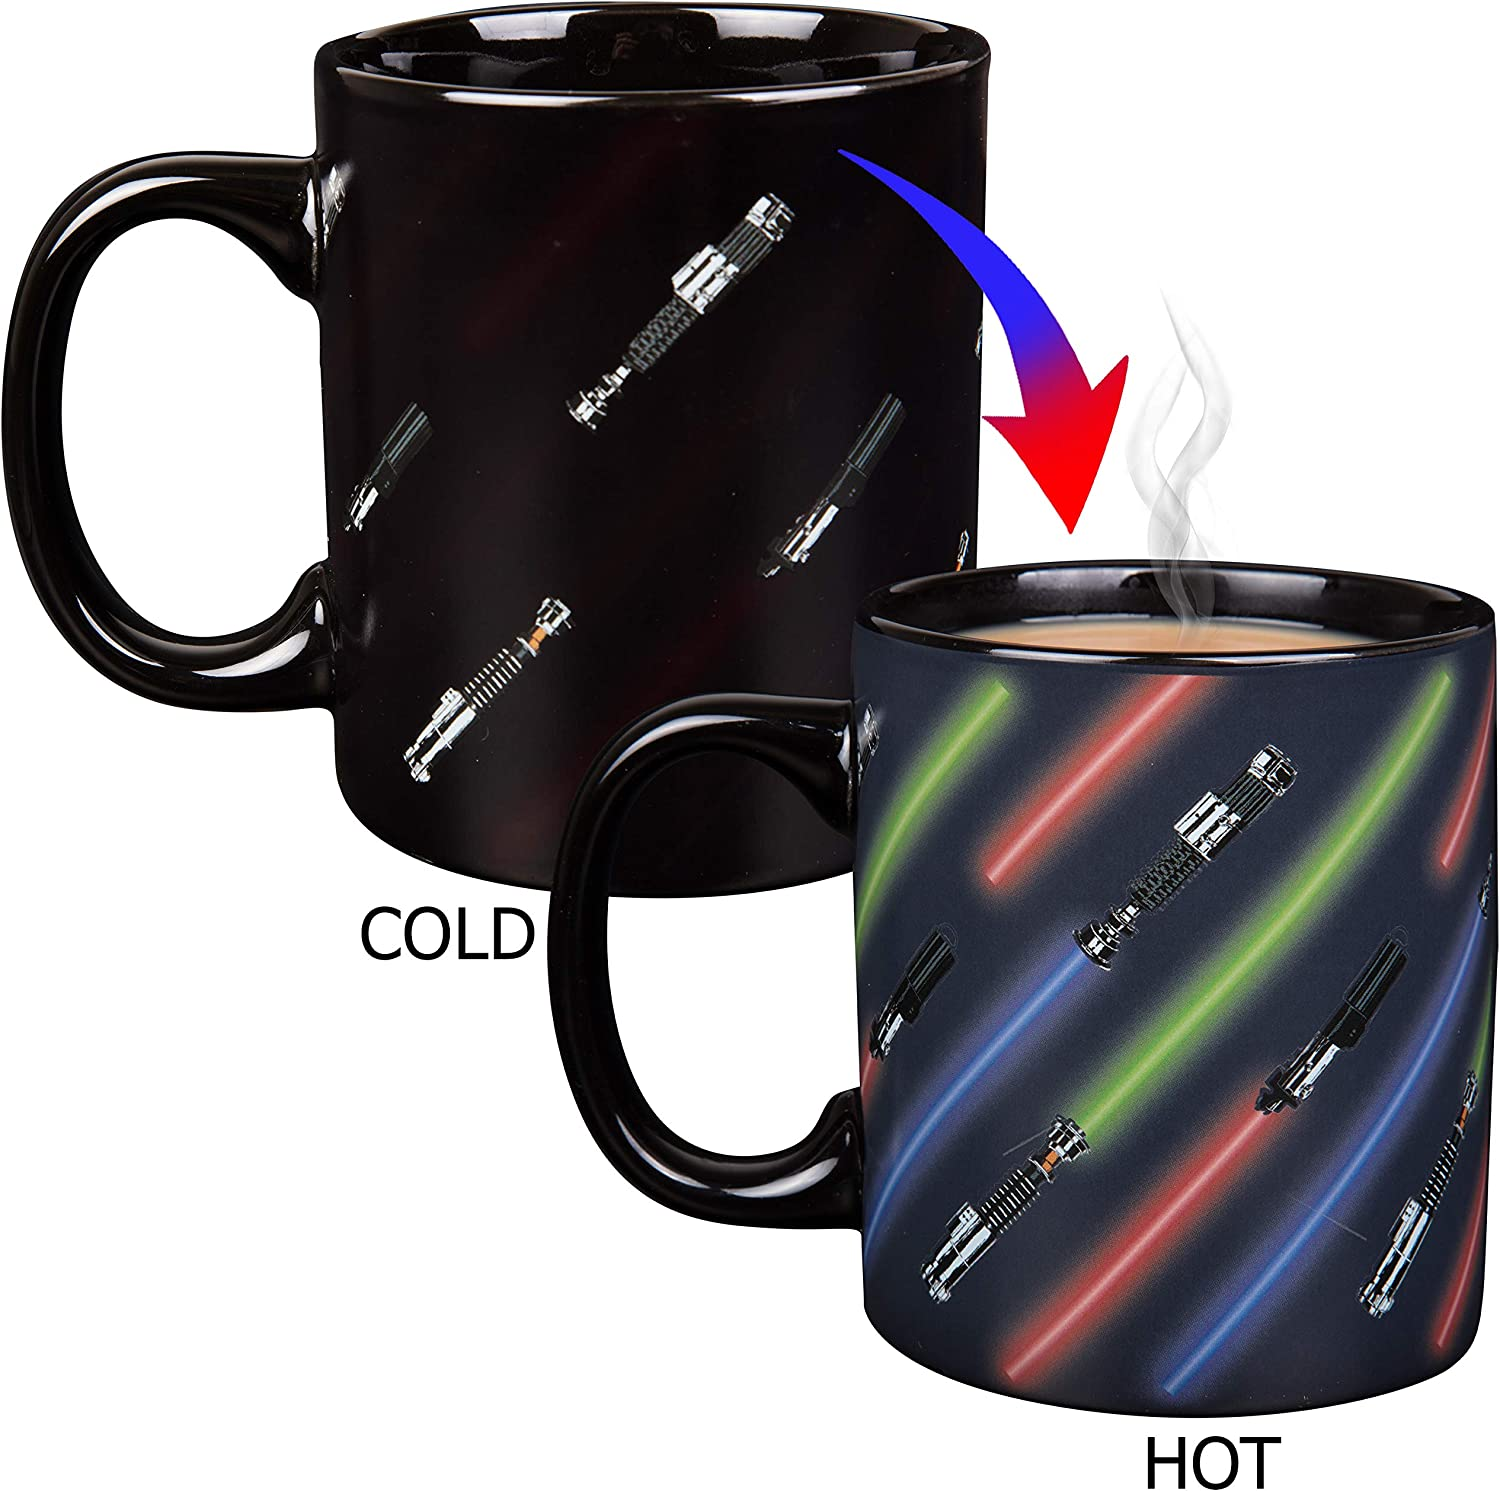 Star Wars Light Saber Heat Reveal Coffee Mug - Lightsaber Images Activate with Heat - Ceramic